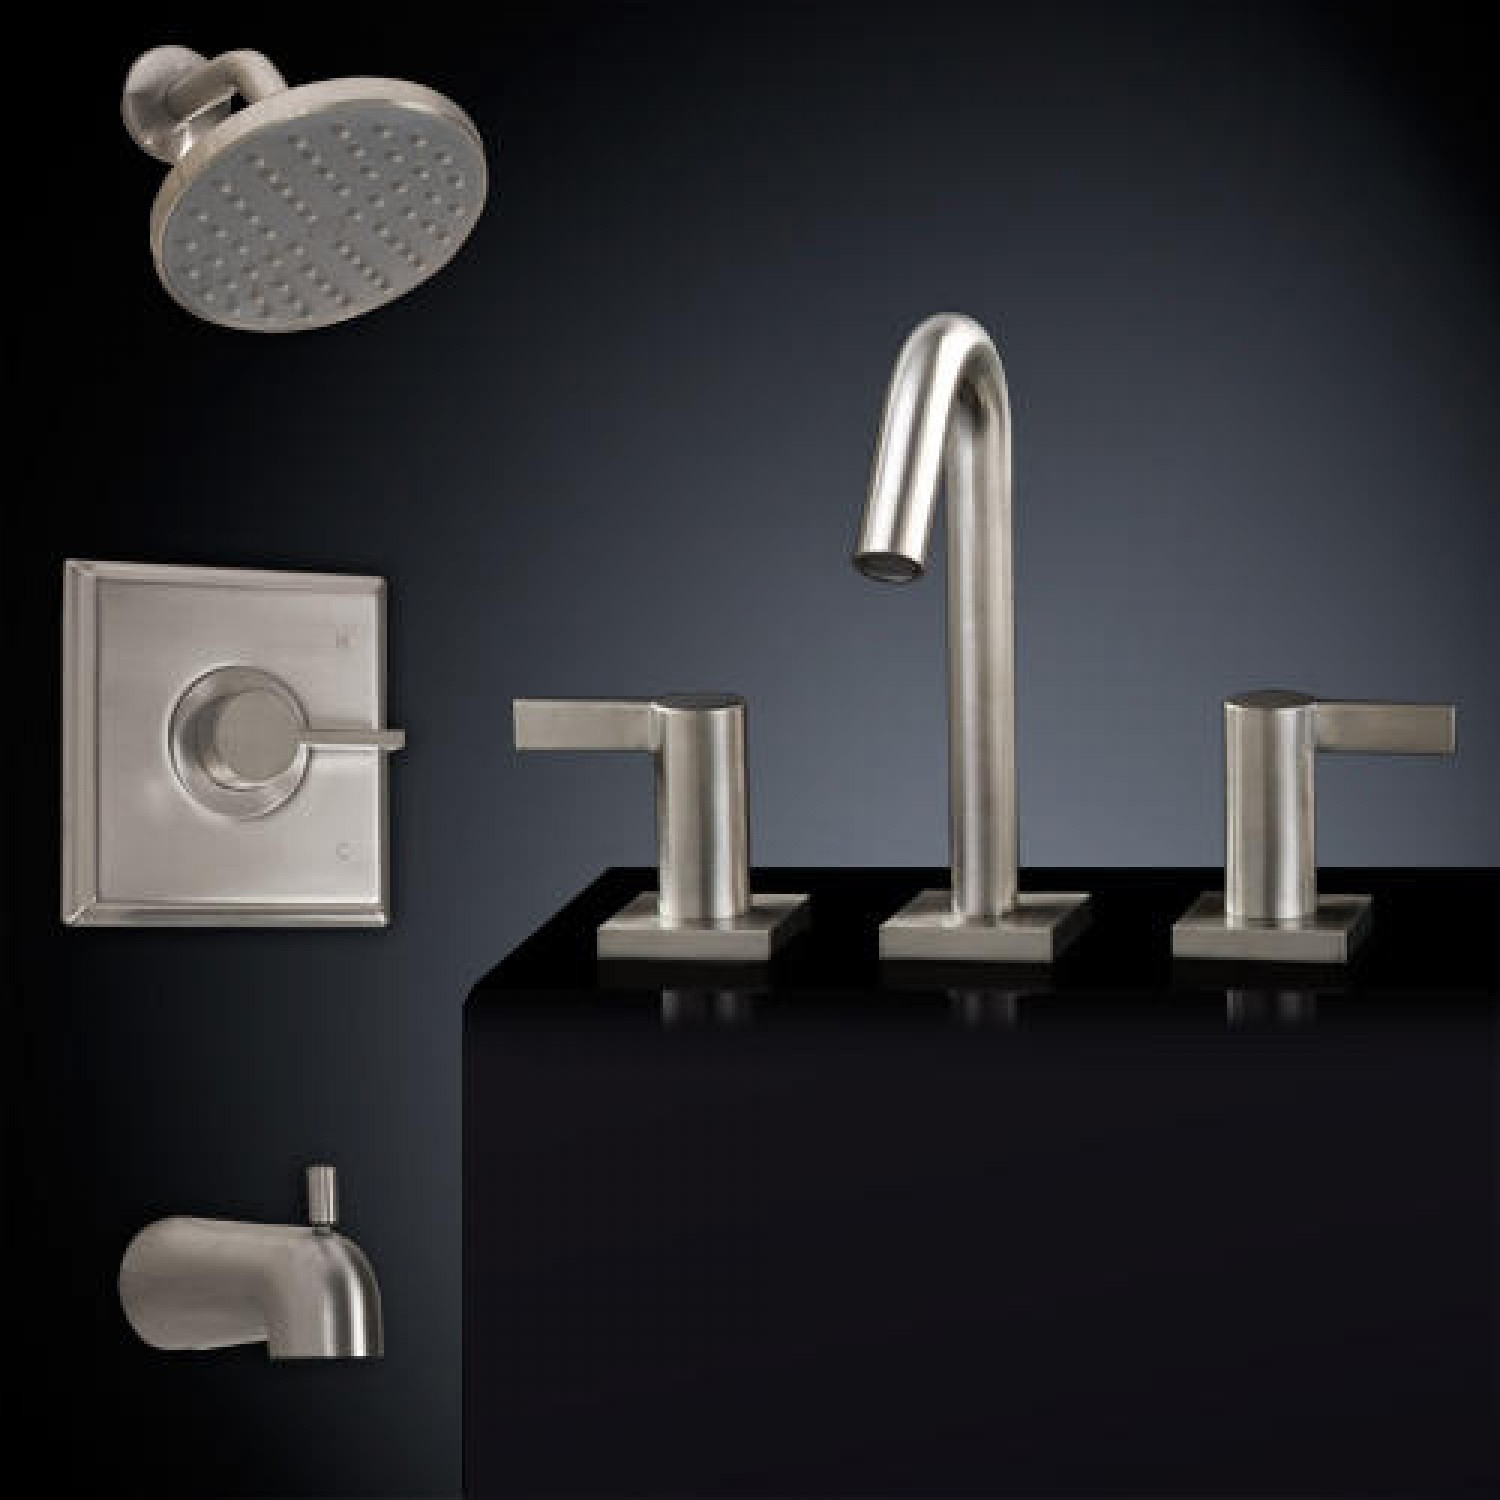 Ideas, flair tub shower set 2 with widespread sink faucet bathroom intended for measurements 1500 x 1500  .